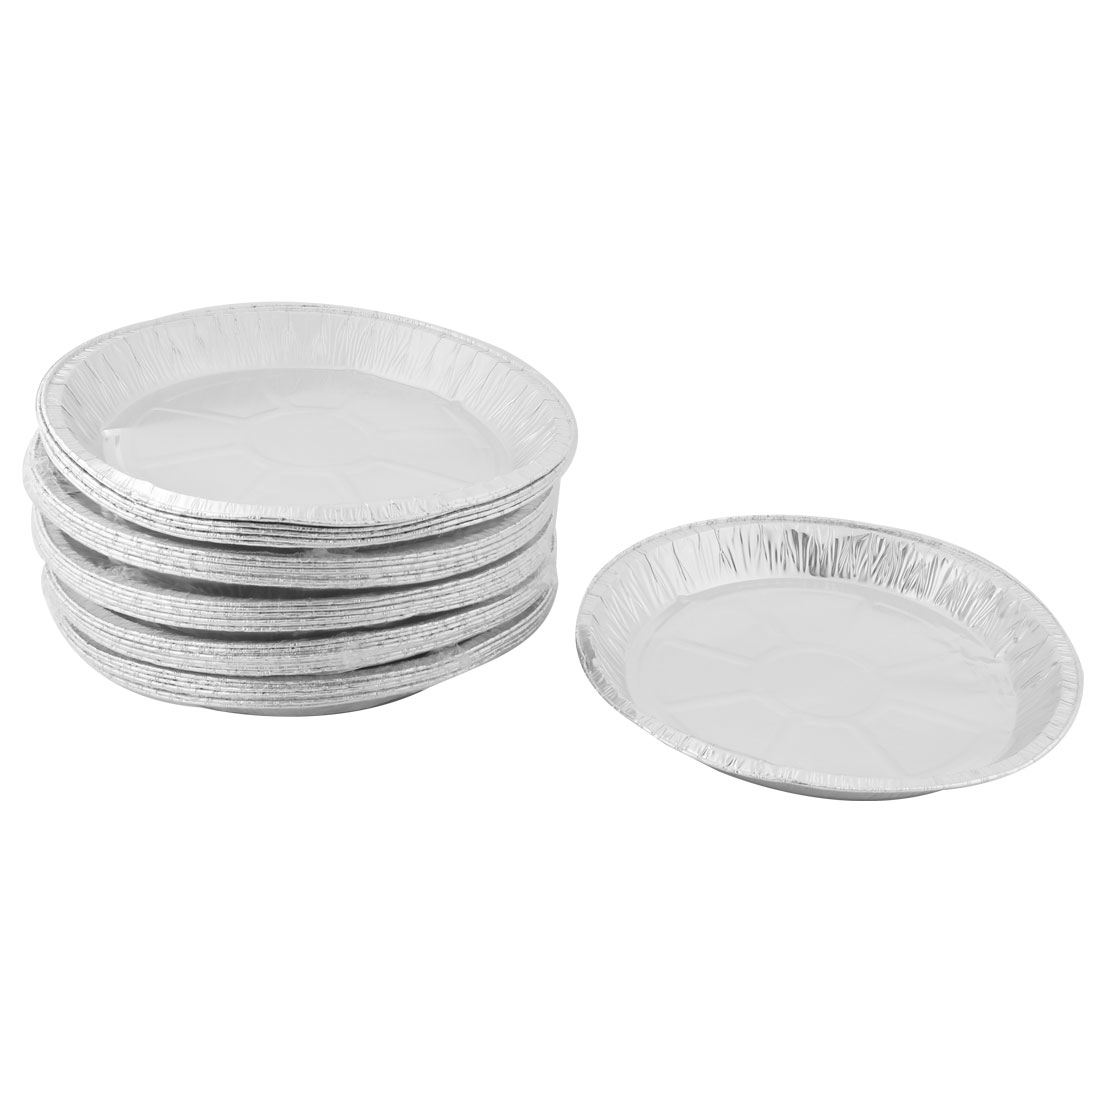 Kitchen Aluminum Foil Round Shaped Disposable Container Cakes Pie Plate 40 PCS